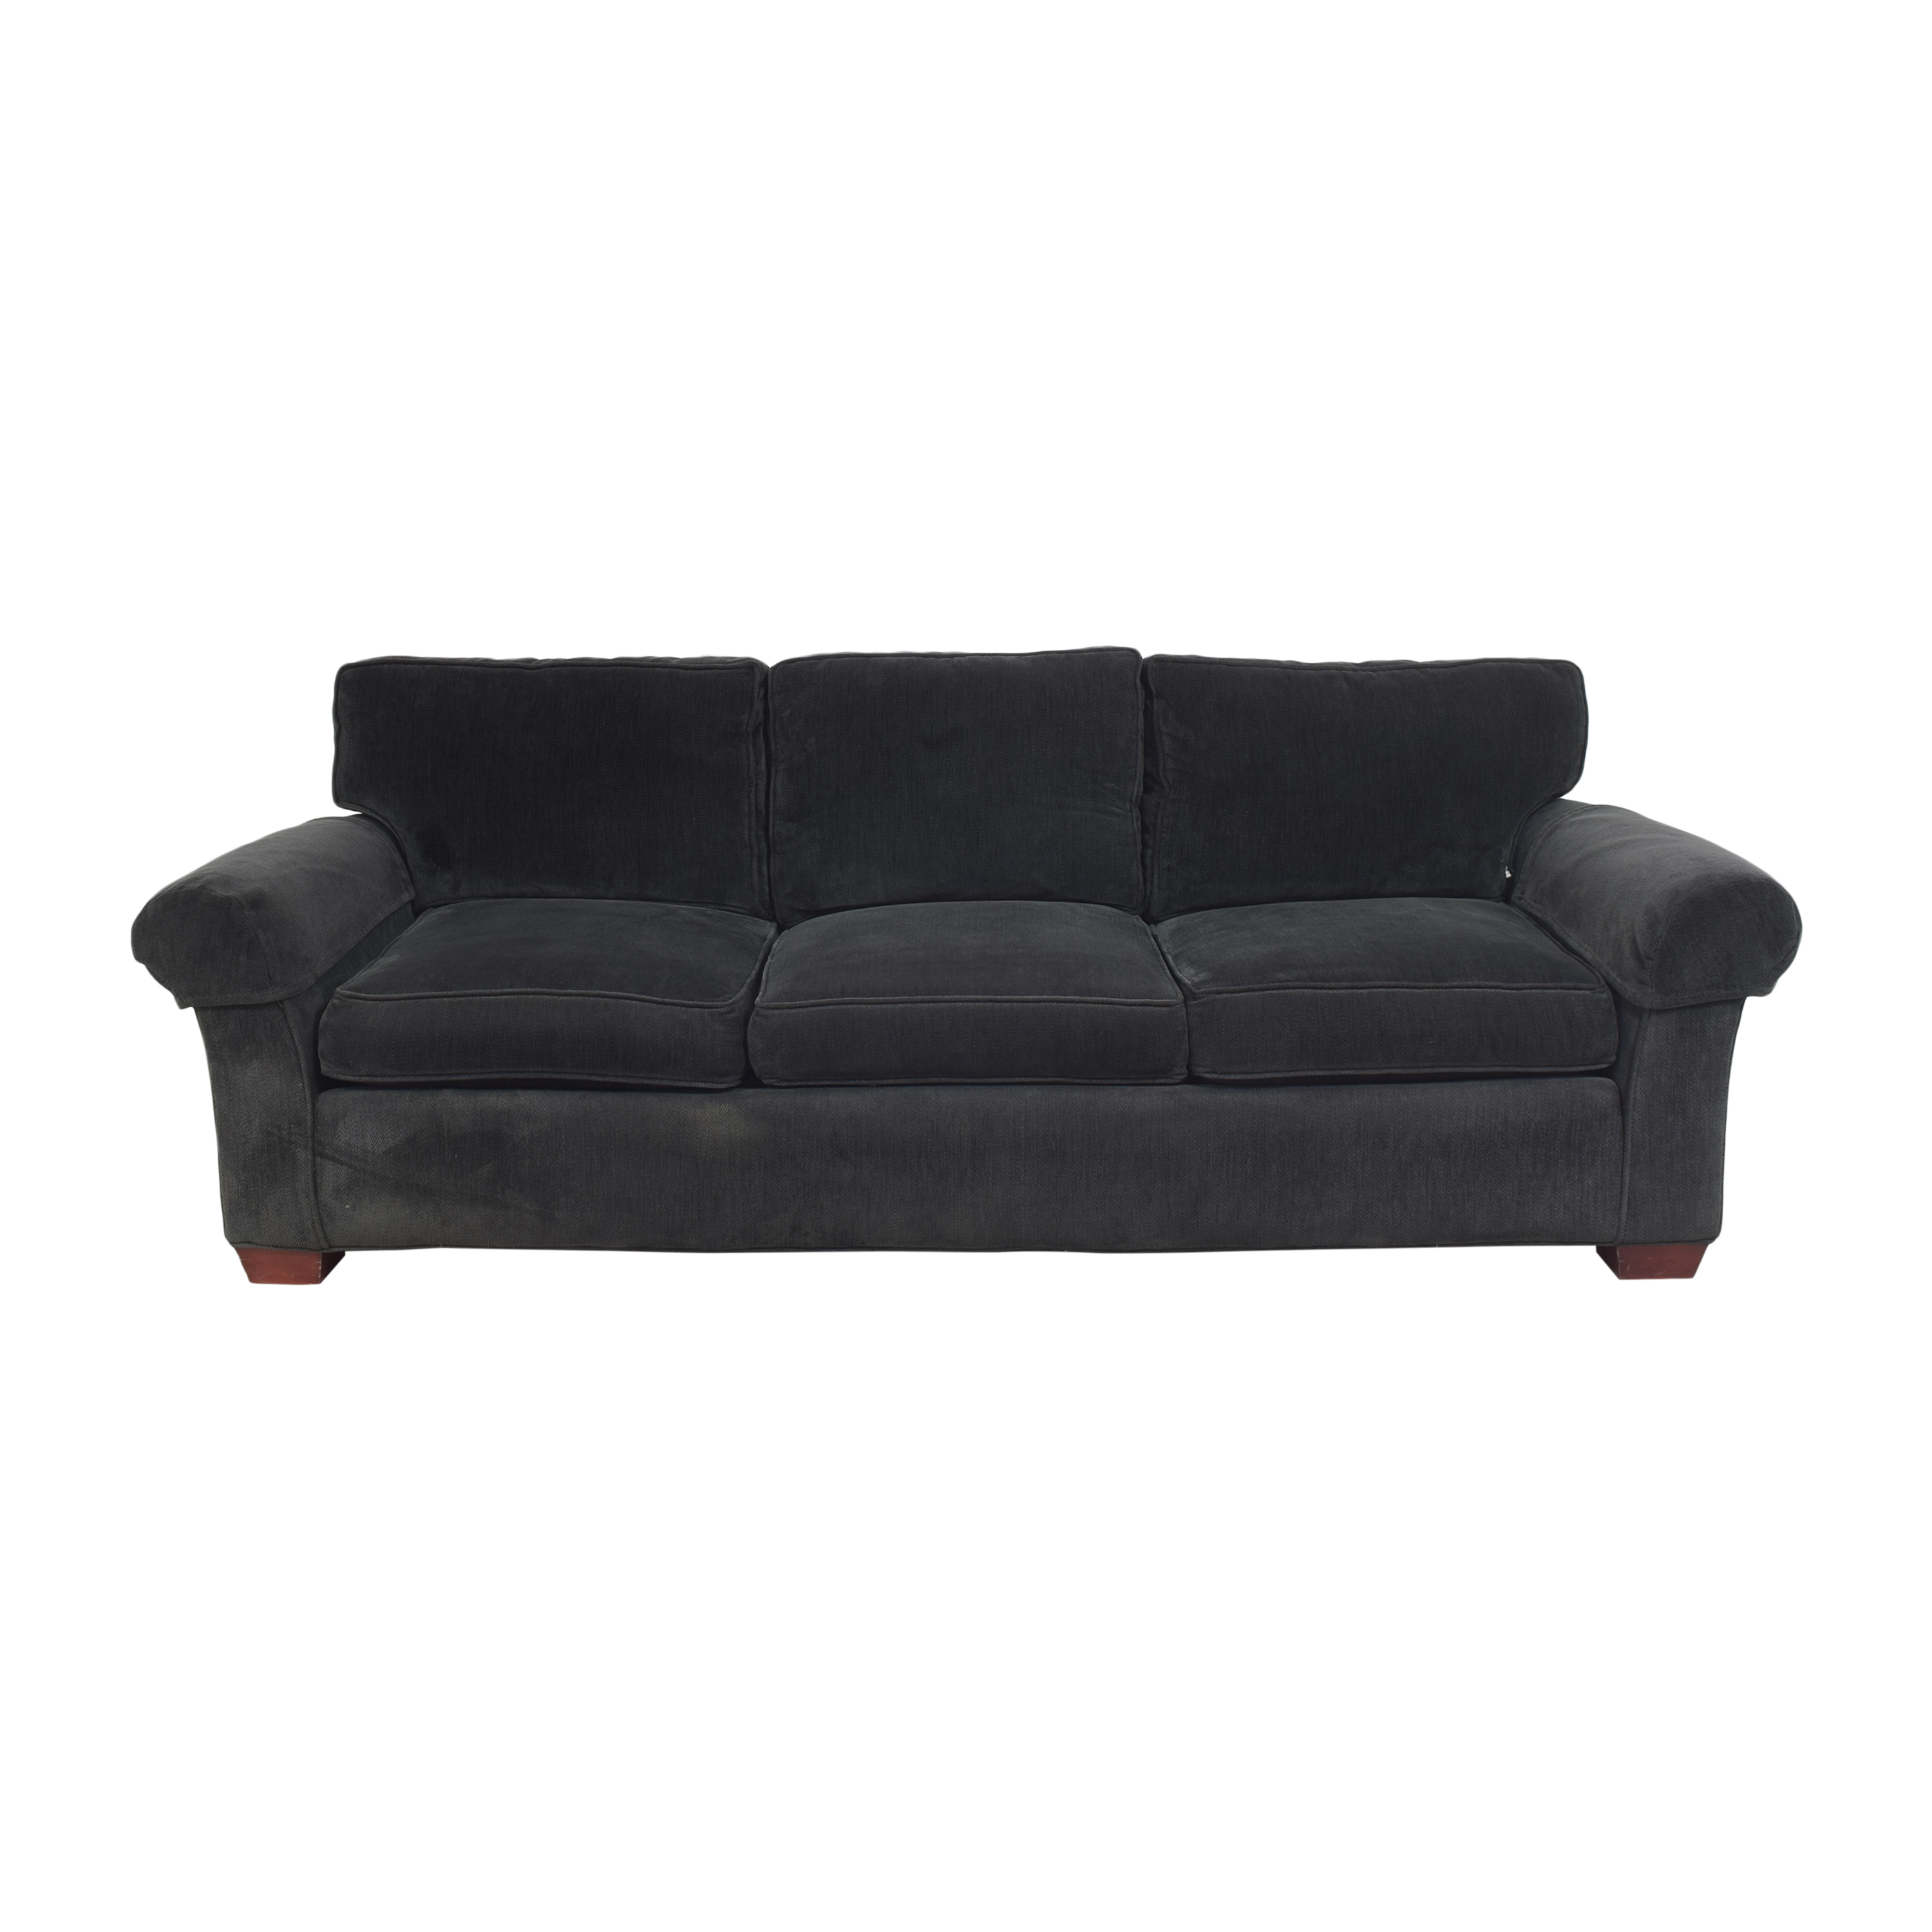 Crate & Barrel Three Cushion Roll Arm Sofa sale